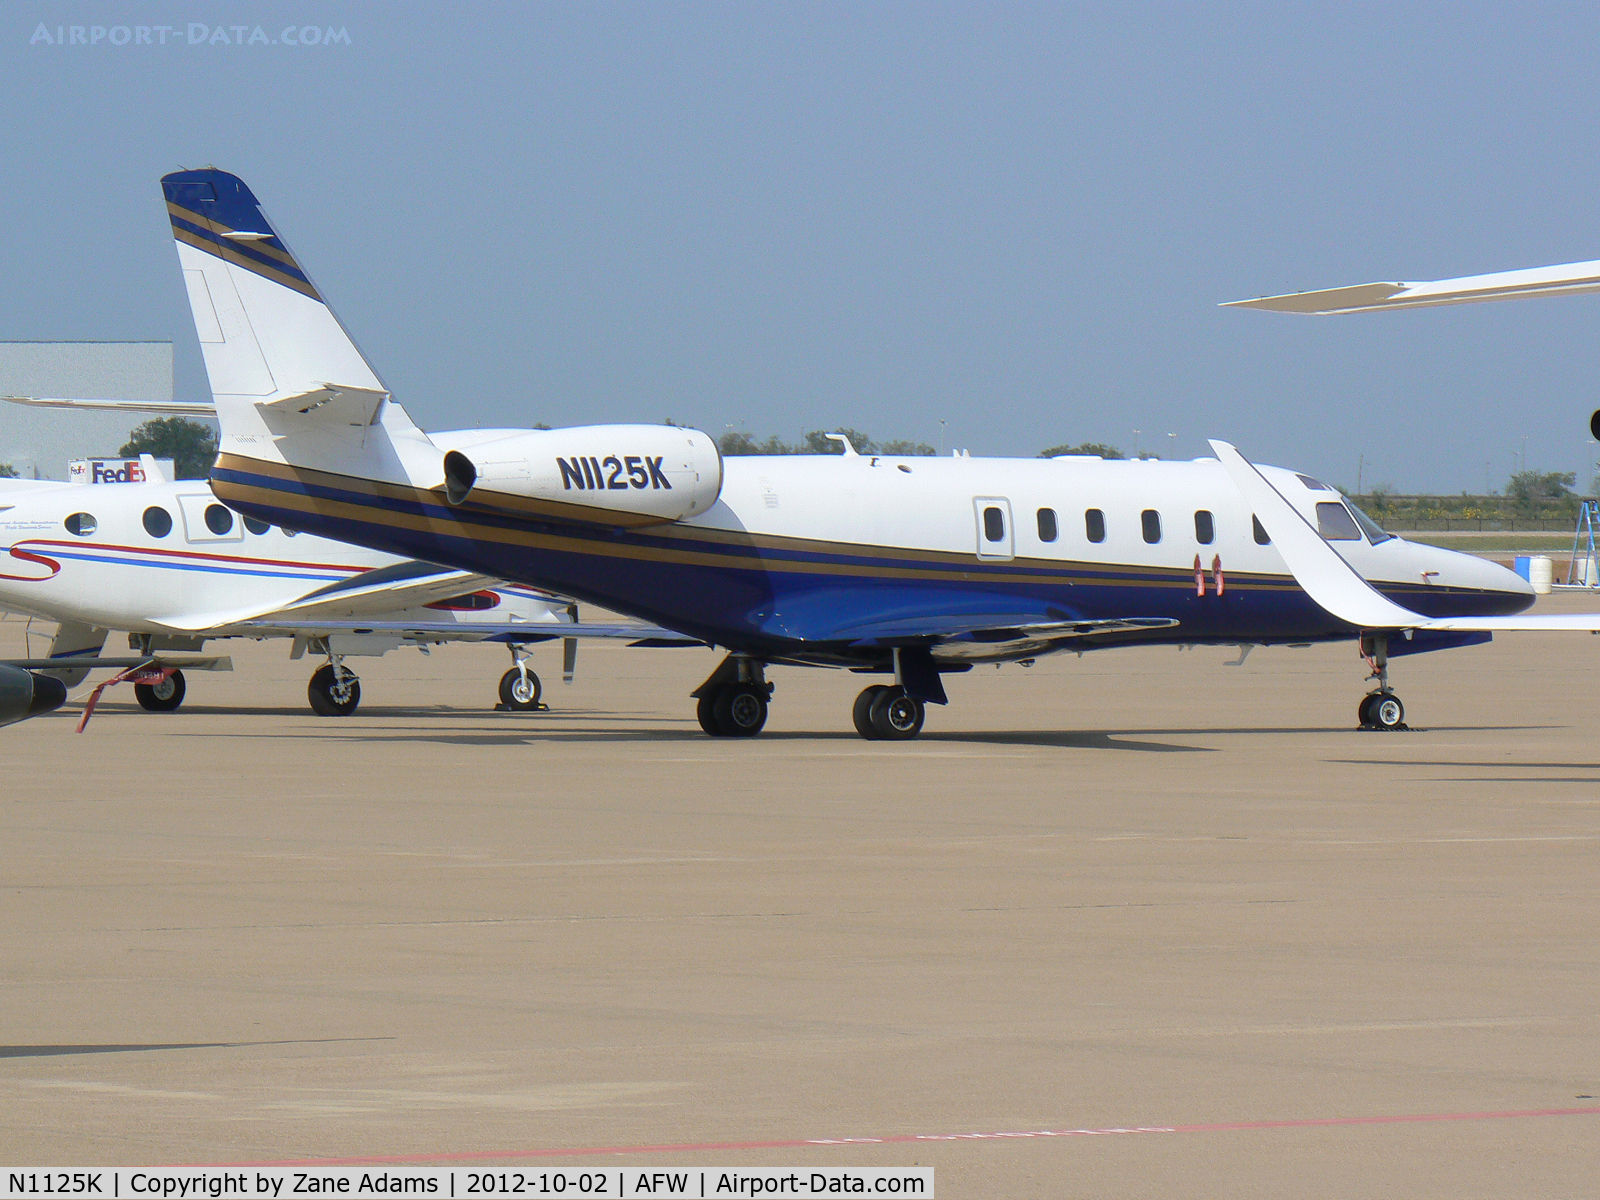 N1125K, 1986 Israel Aircraft Industries 1125 Westwind Astra C/N 035, At Alliance Airport - Fort Worth, TX